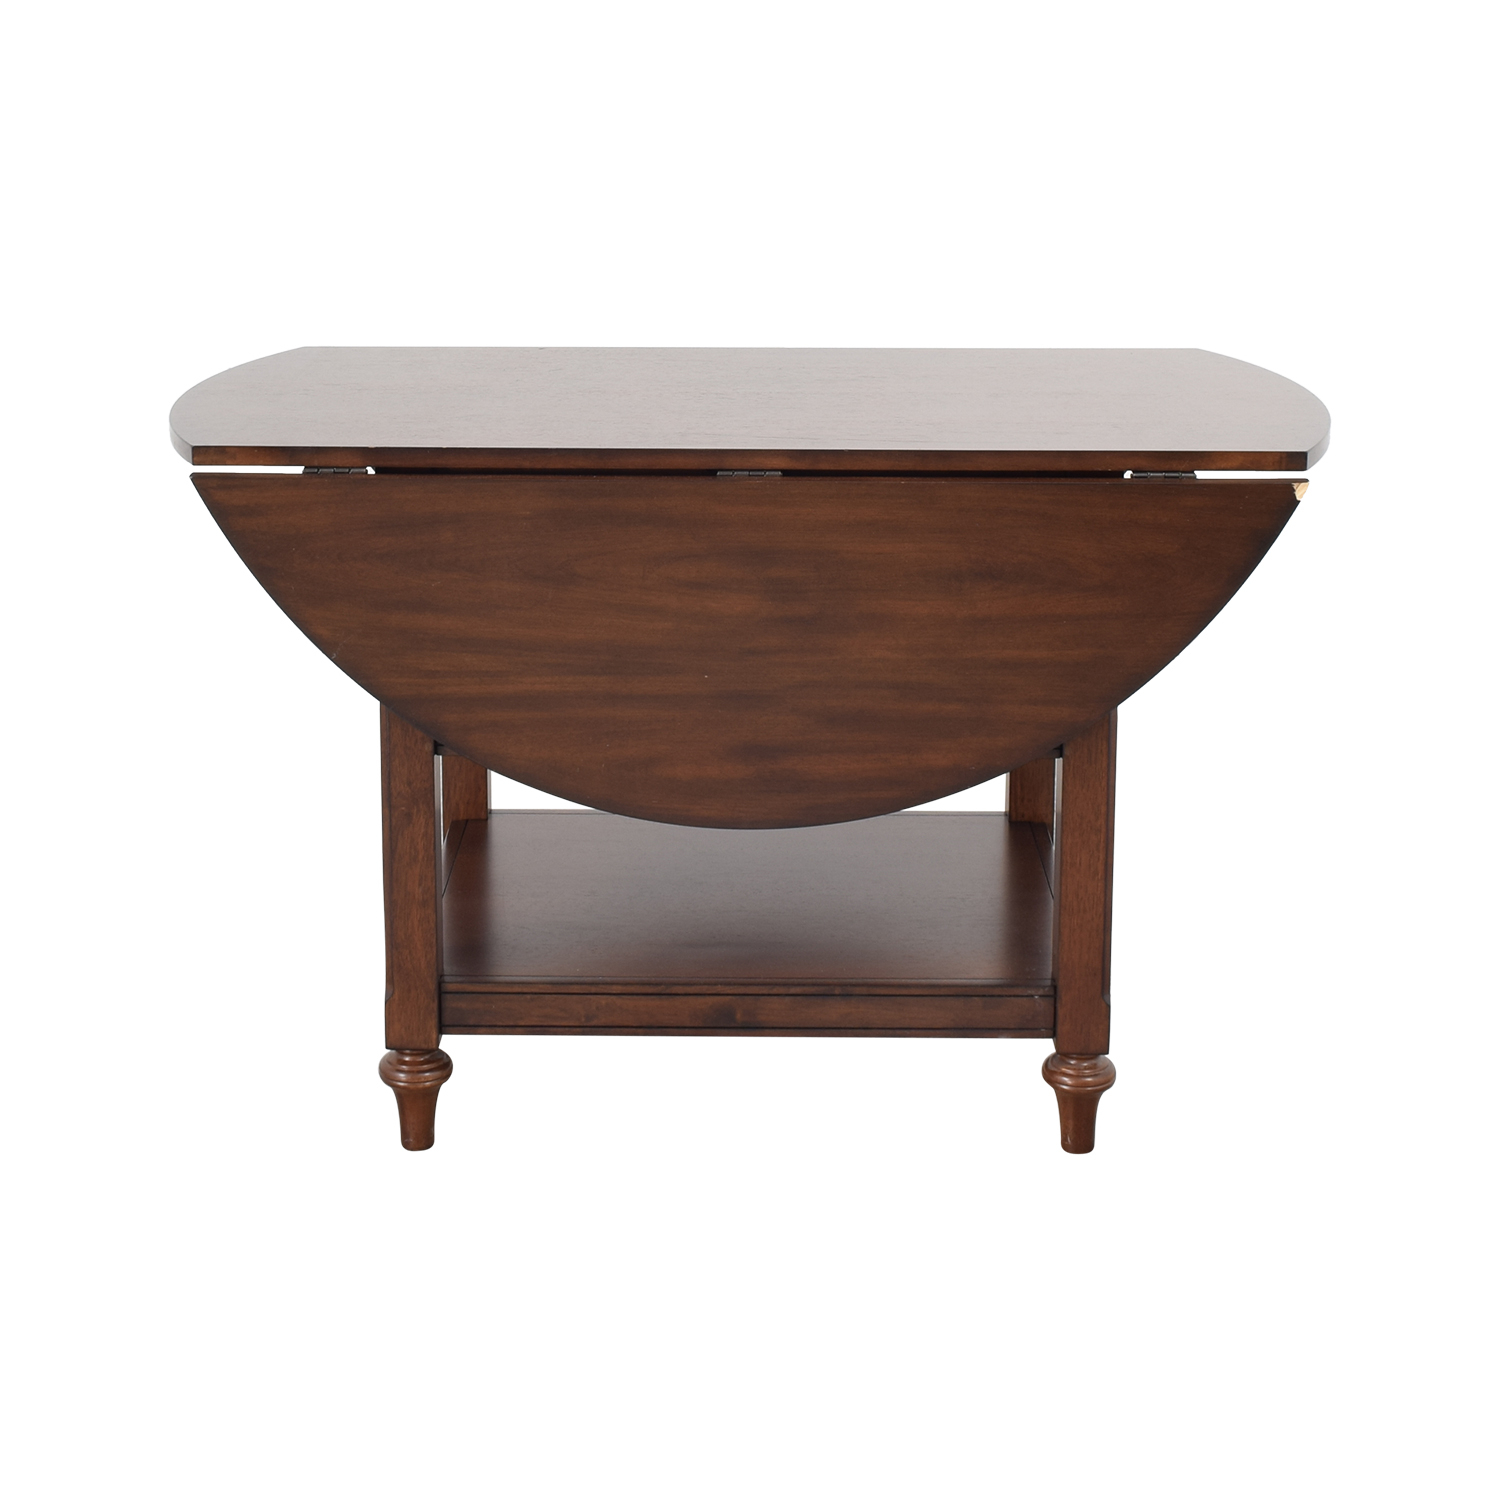 66% Off – Pottery Barn Pottery Barn Drop Leaf Kitchen Table / Tables Within 2018 Black Shayne Drop Leaf Kitchen Tables (View 19 of 25)